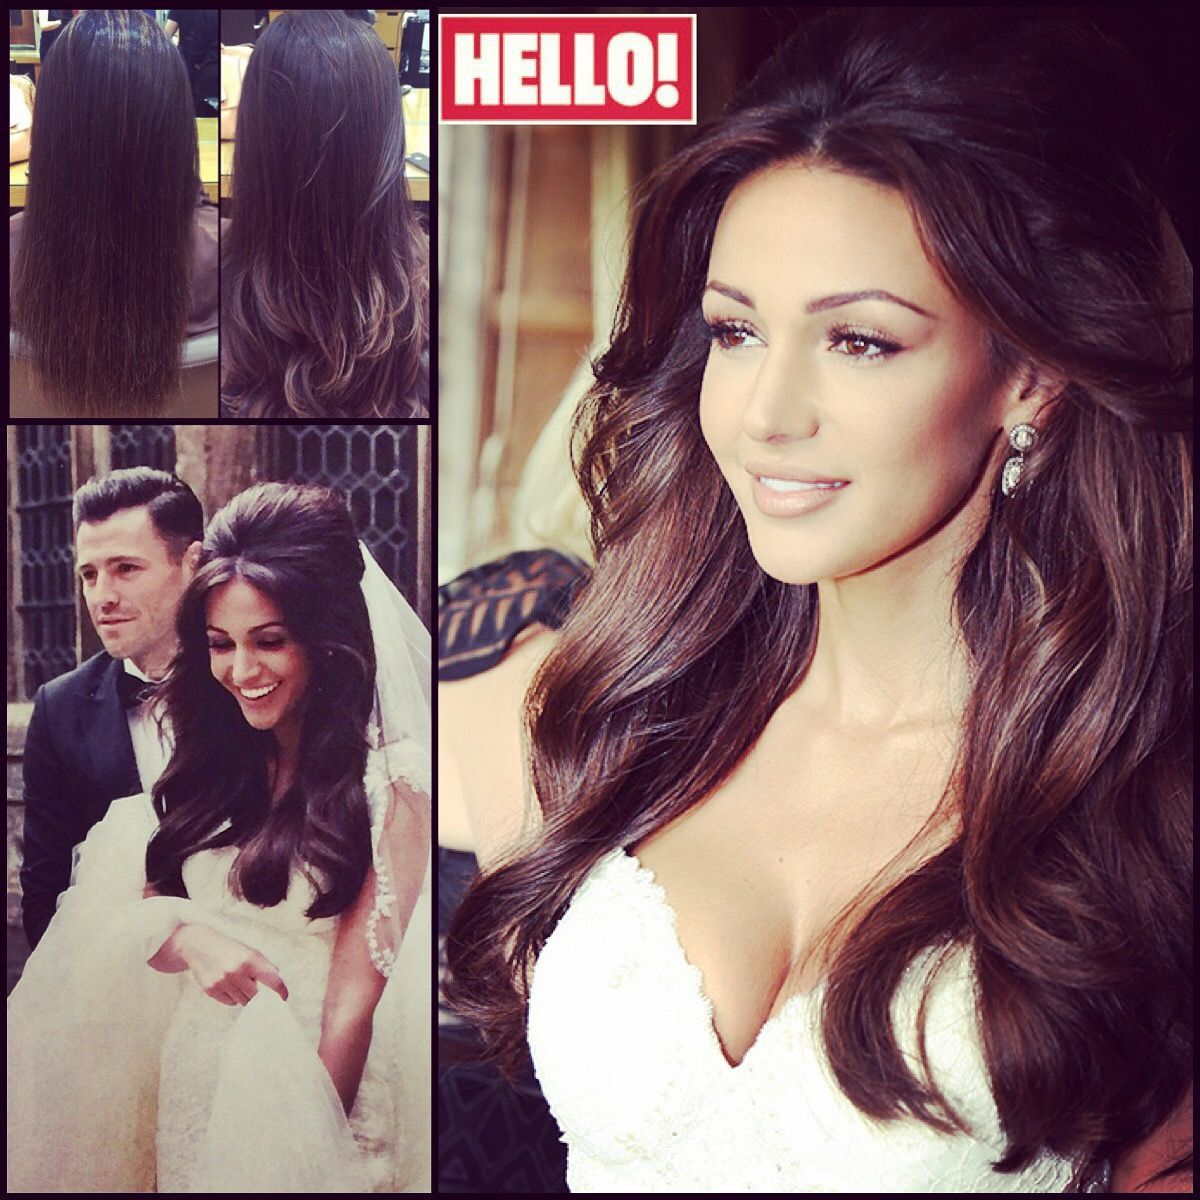 The perfect bride with the perfect hair... Michelle Keegan's stunning wedding hair enhanced with our Gold Class Hair extensions in the lead-up to her big day.